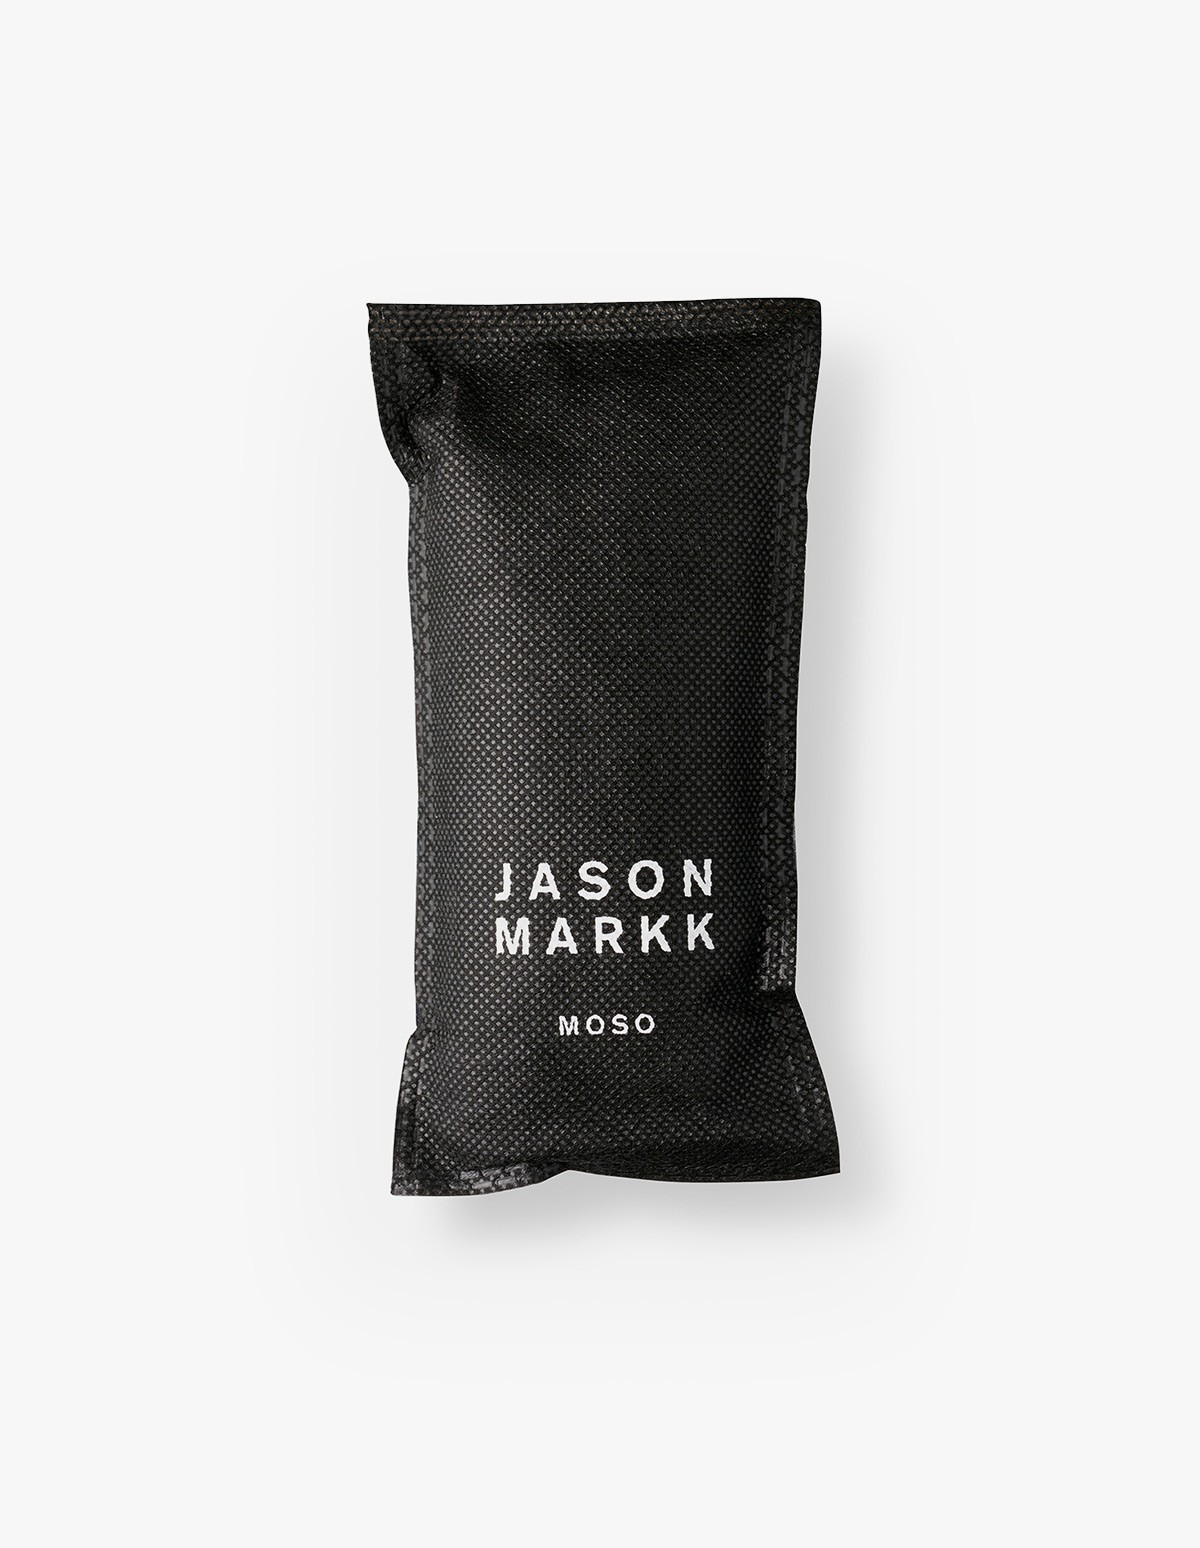 Jason Markk Moso Shoe Inserts in